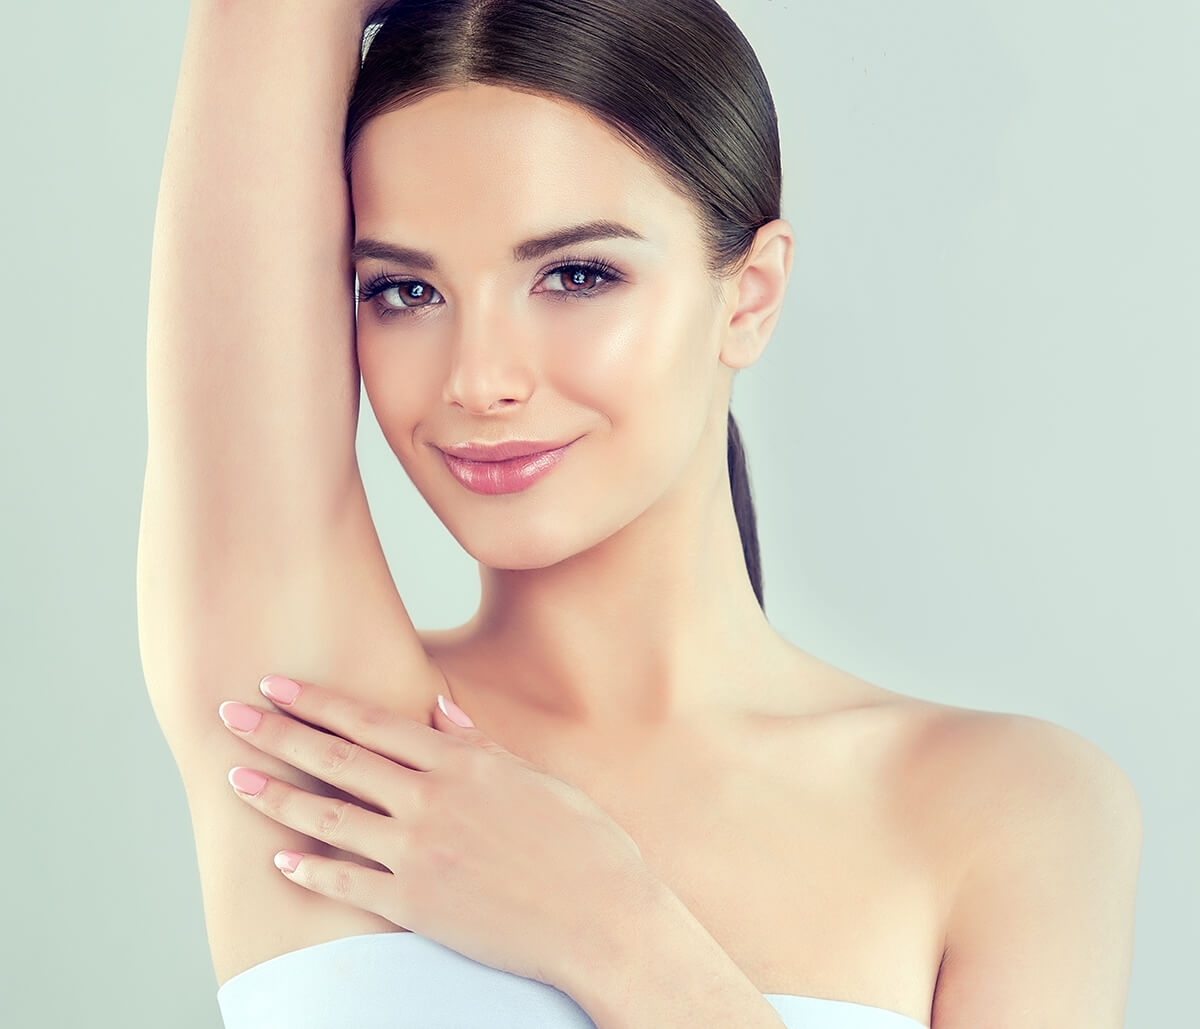 Laser Hair Reduction in Stockton Area